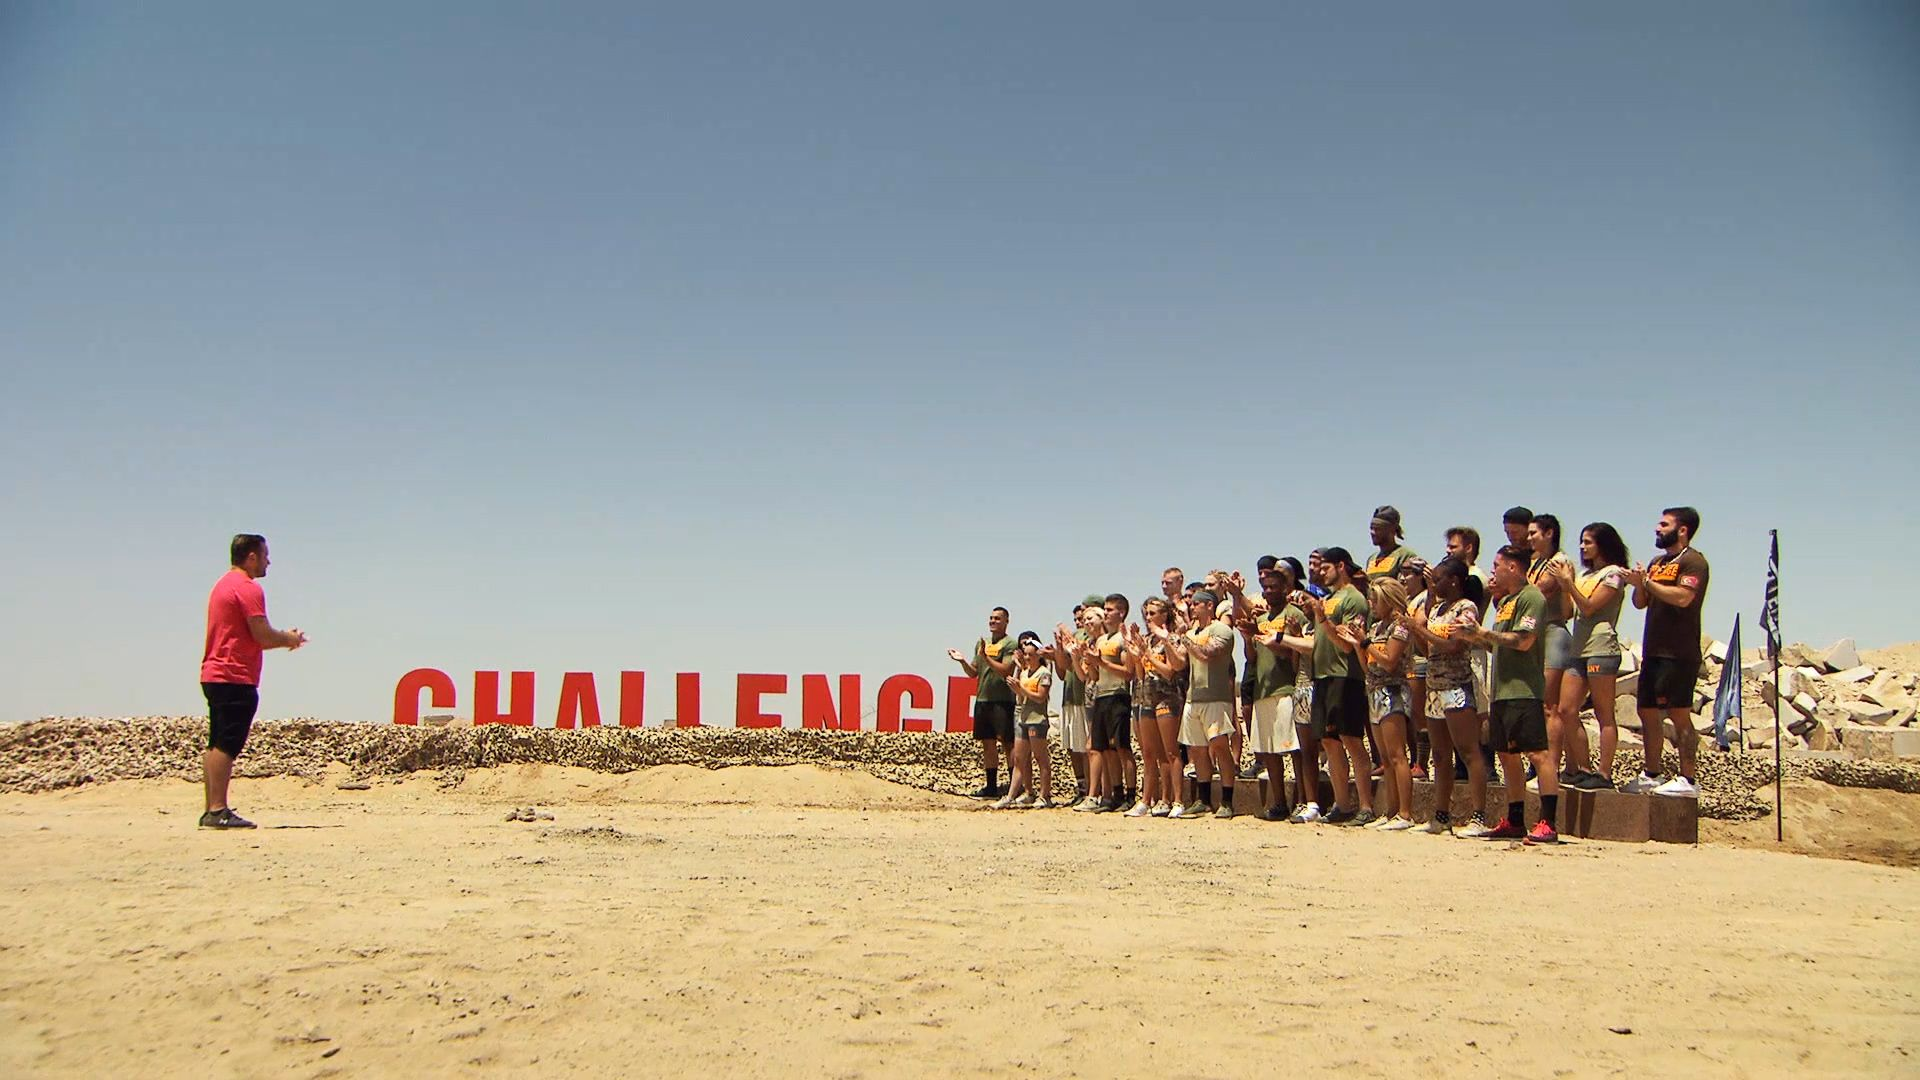 'The Challenge' Episode 3 Spoilers & Recap